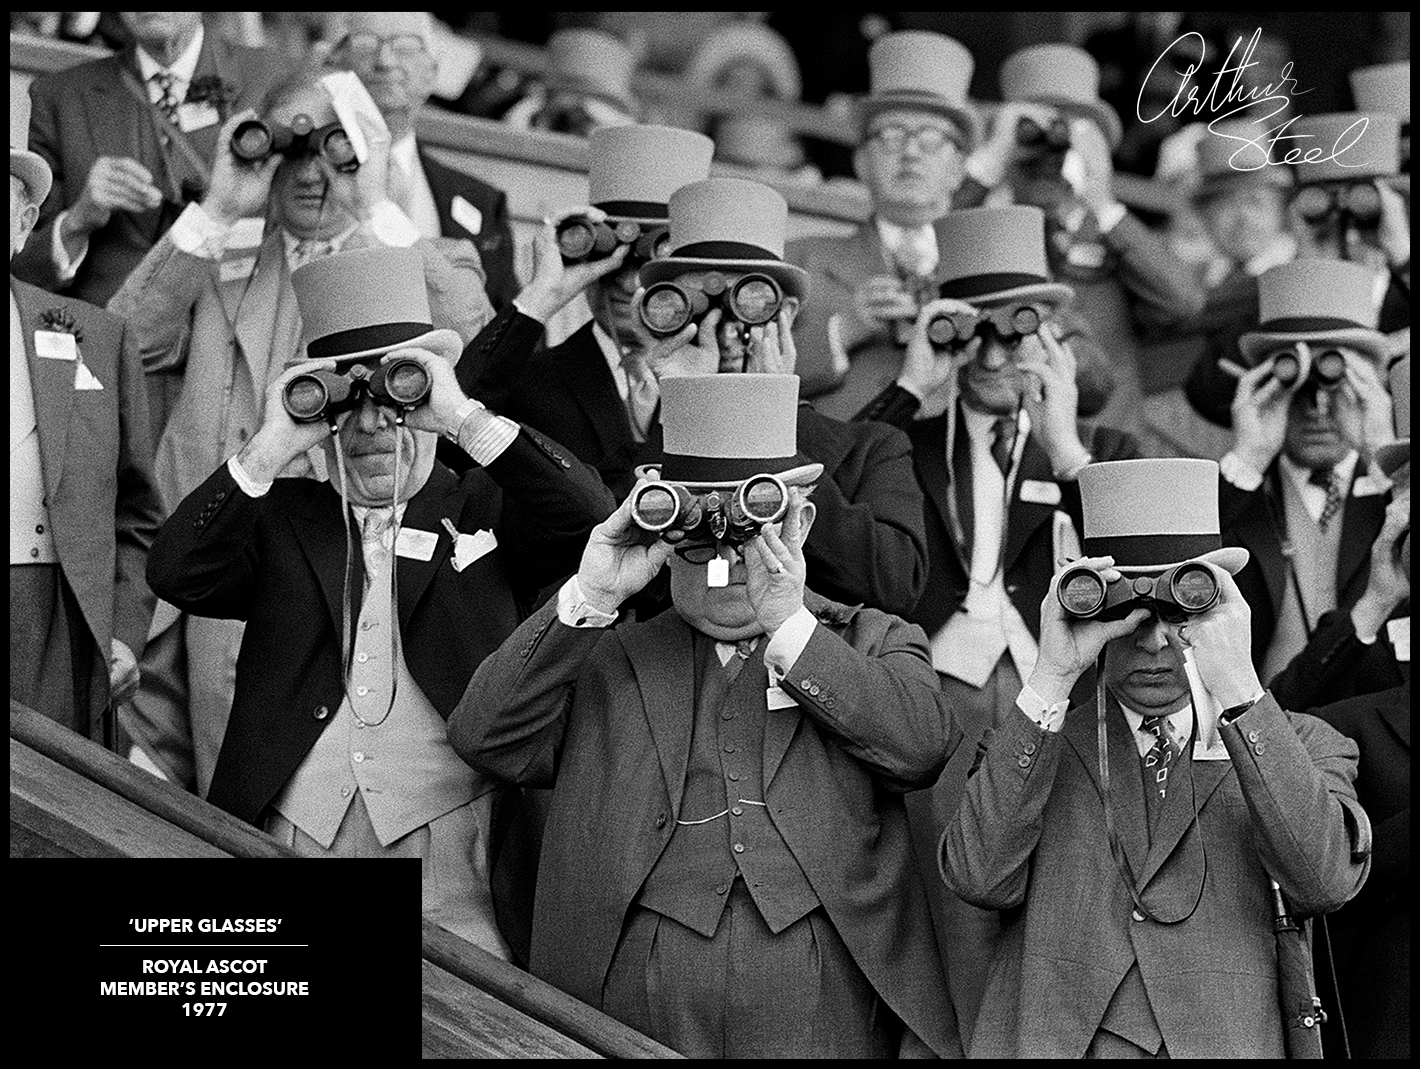 royal ascot rare photograph arthur steel